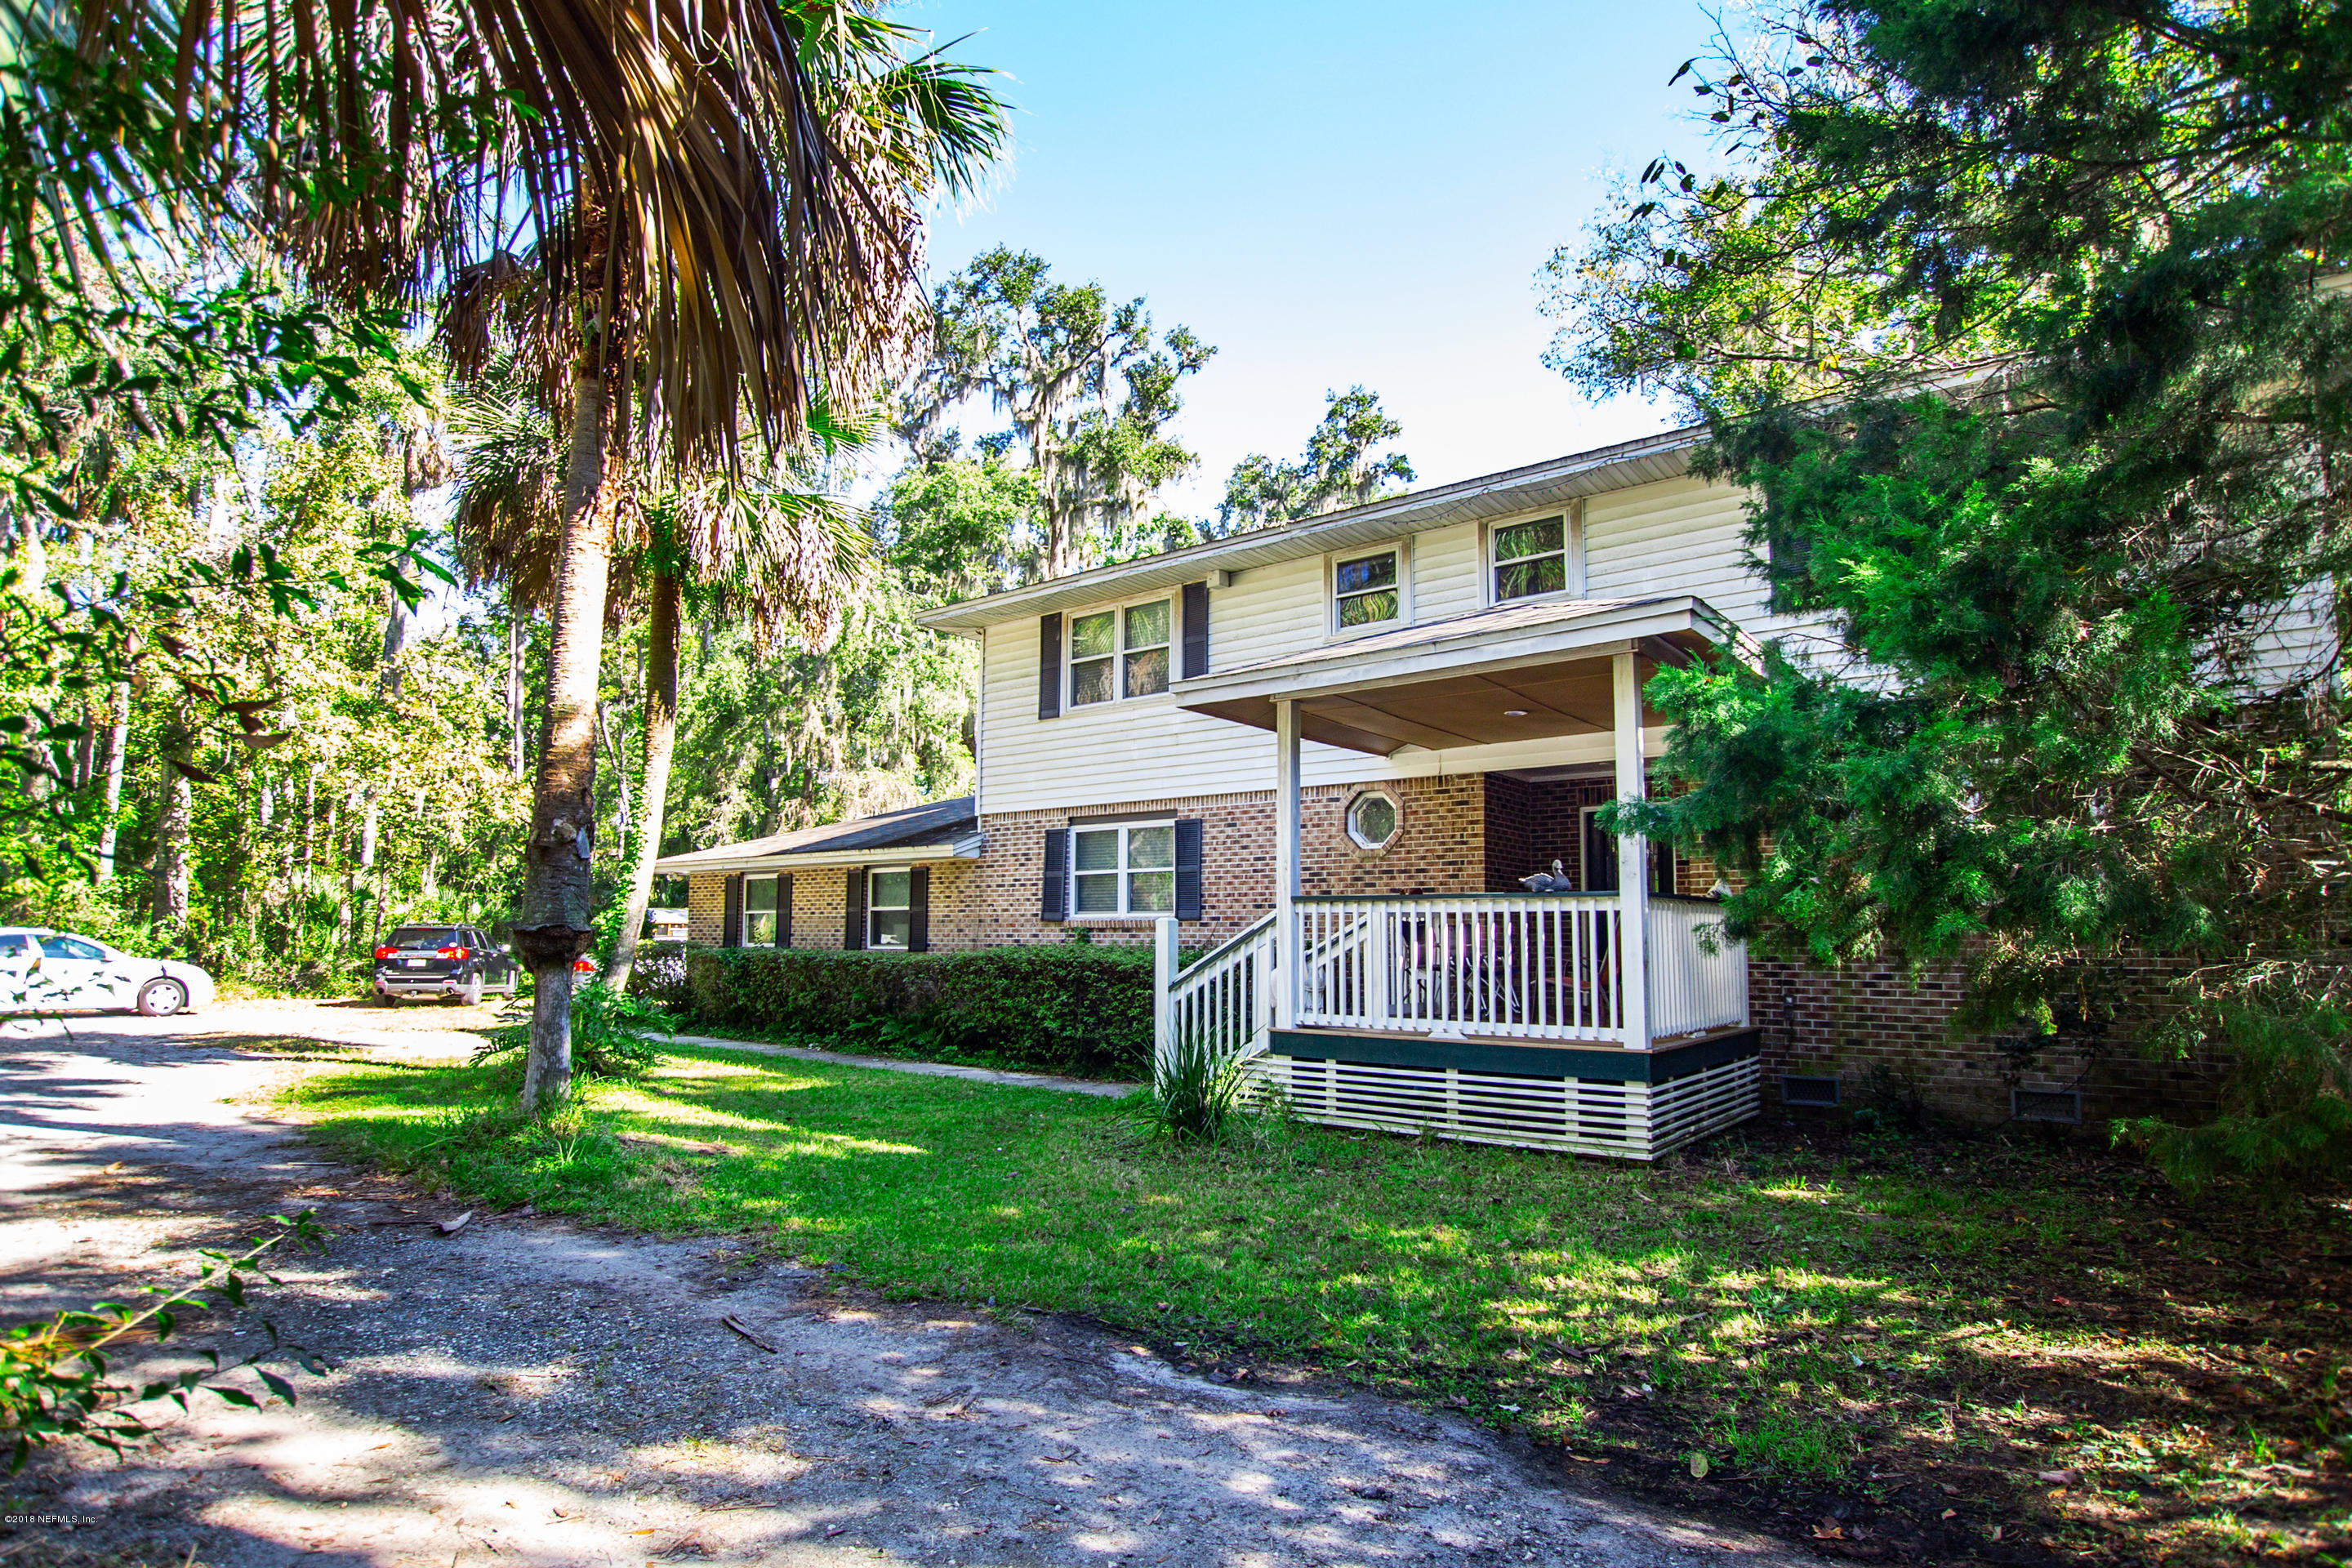 160 ROSCOE, PONTE VEDRA BEACH, FLORIDA 32082, 3 Bedrooms Bedrooms, ,2 BathroomsBathrooms,Residential - single family,For sale,ROSCOE,965334